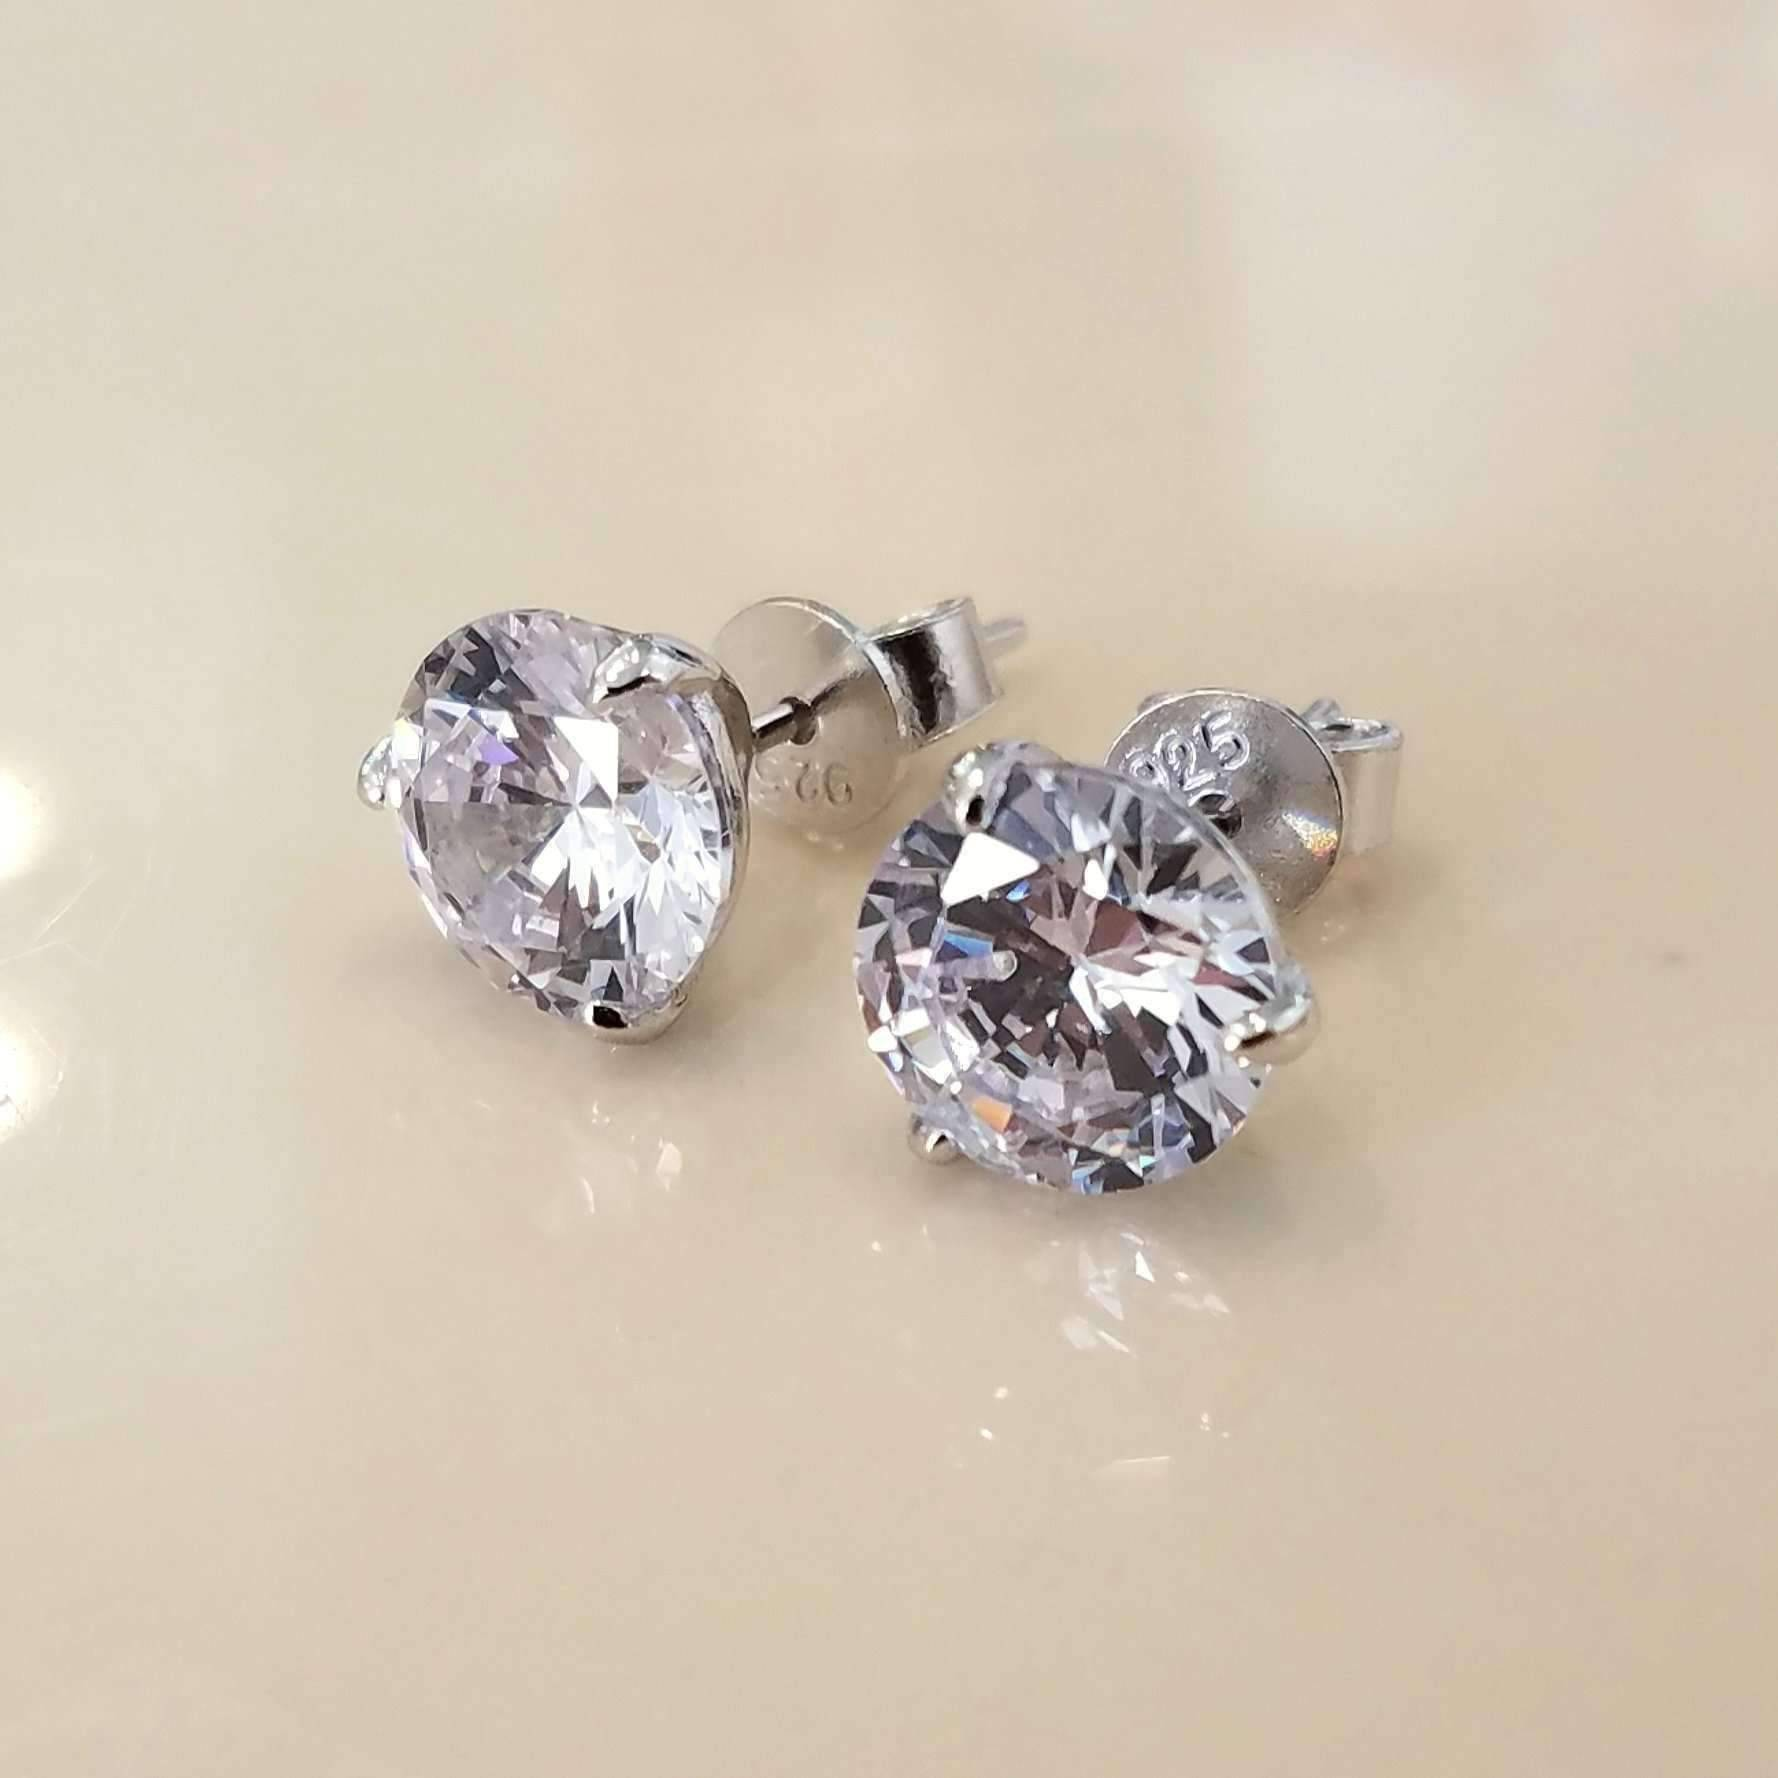 9983c197a ON SALE - Elite Round Three Prong IOBI Simulated Diamond Solitaire Stud  Earrings 2 Carat